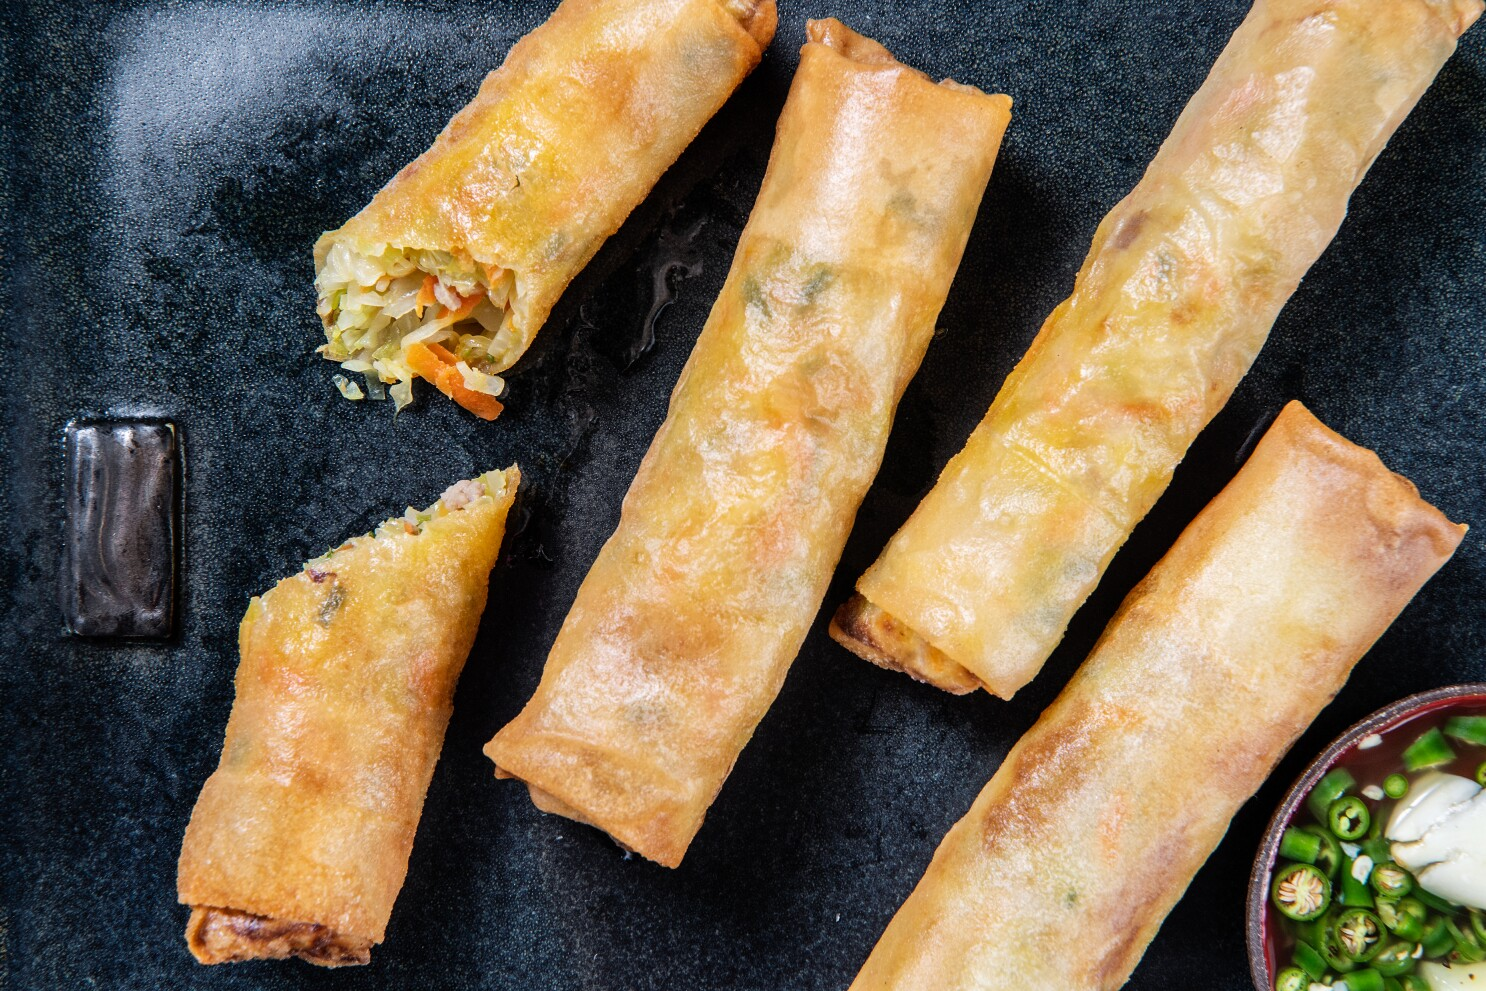 Charles Olalia S Shanghai Lumpia Are Spring Rolls With A Spicy Twist Los Angeles Times